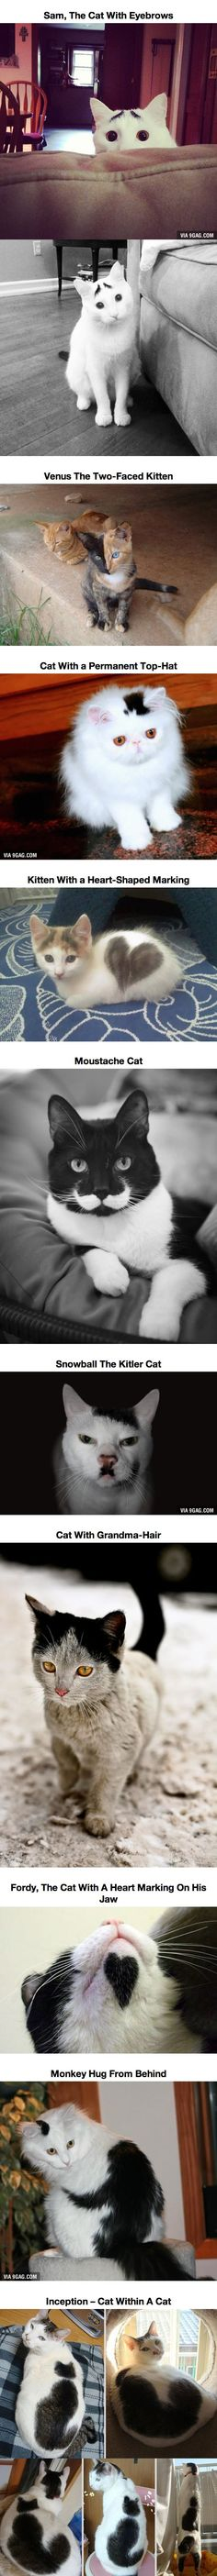 10 Cats That Got Famous For Their Awesome Fur Markings. I'm not a cat person, but I was crying...snowball the kitler cat...